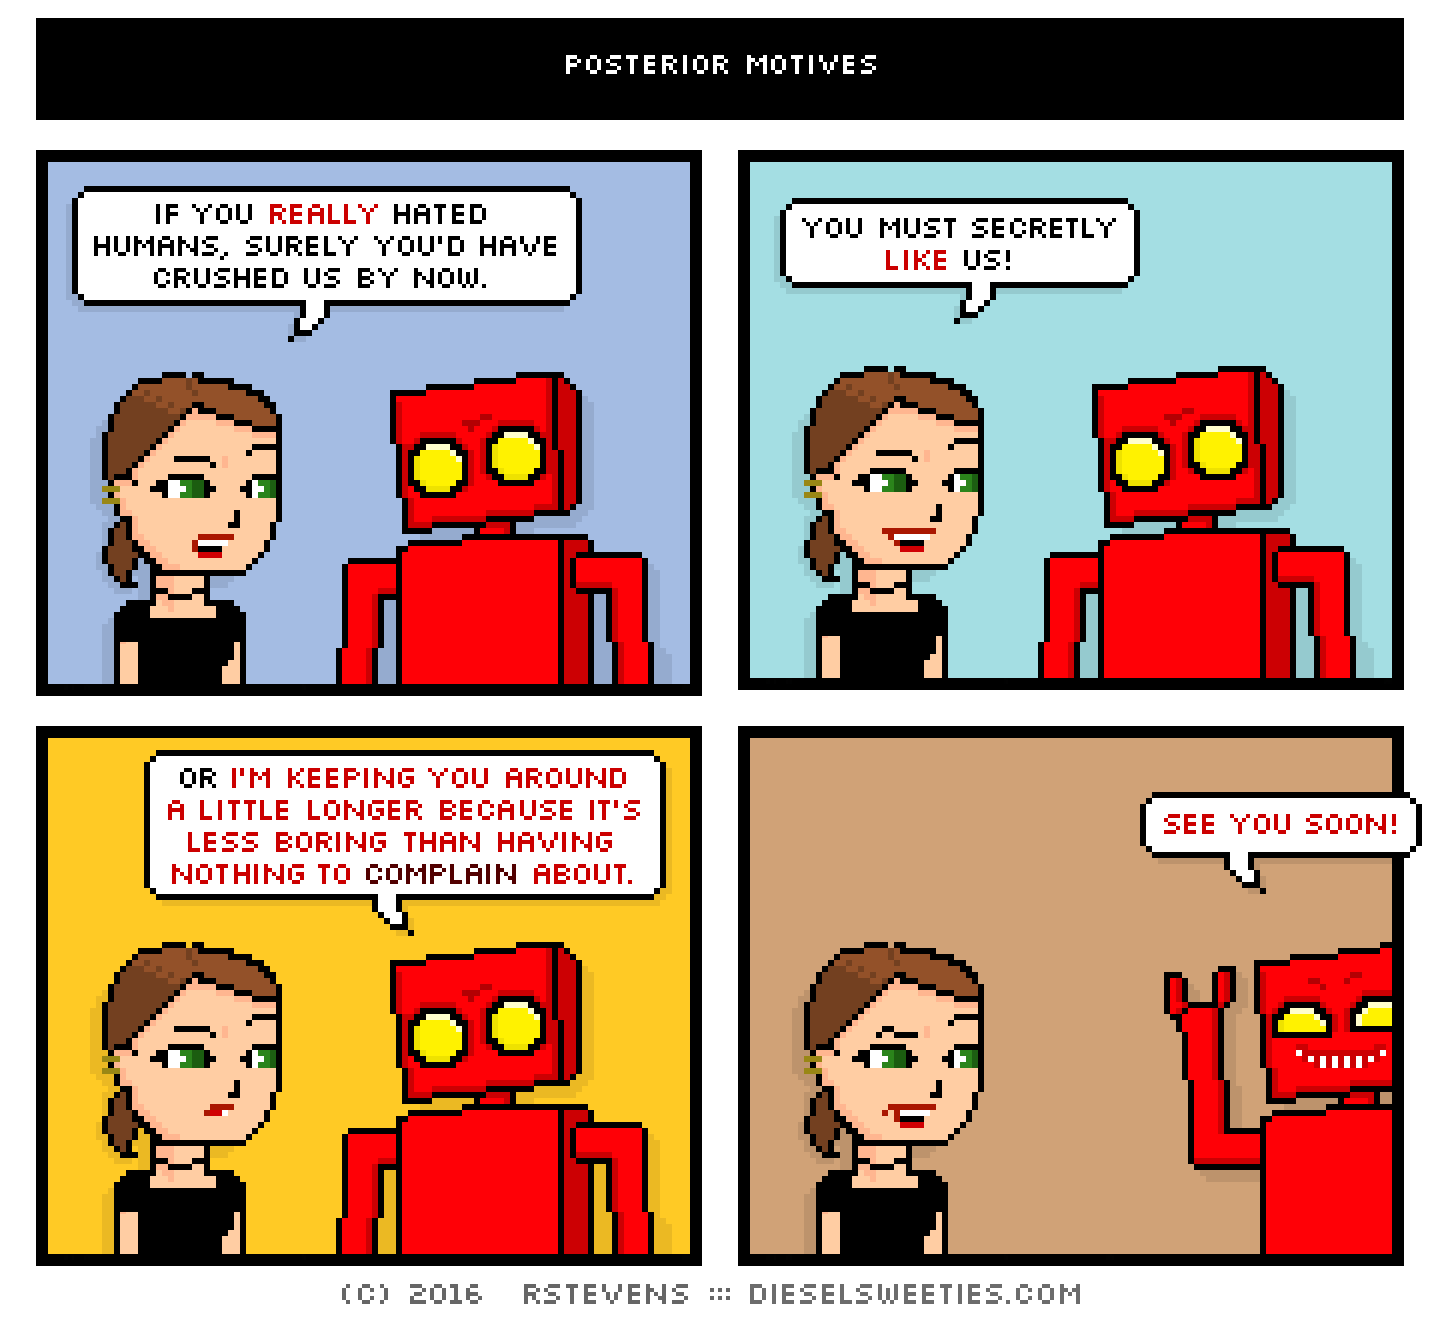 lil sis, red robot, darth vader : if you really hated humans, surely you'd have crushed us by now you must secretly like us! or i'm keeping you around a little longer because it's less boring than having nothing to complain about see you soon!